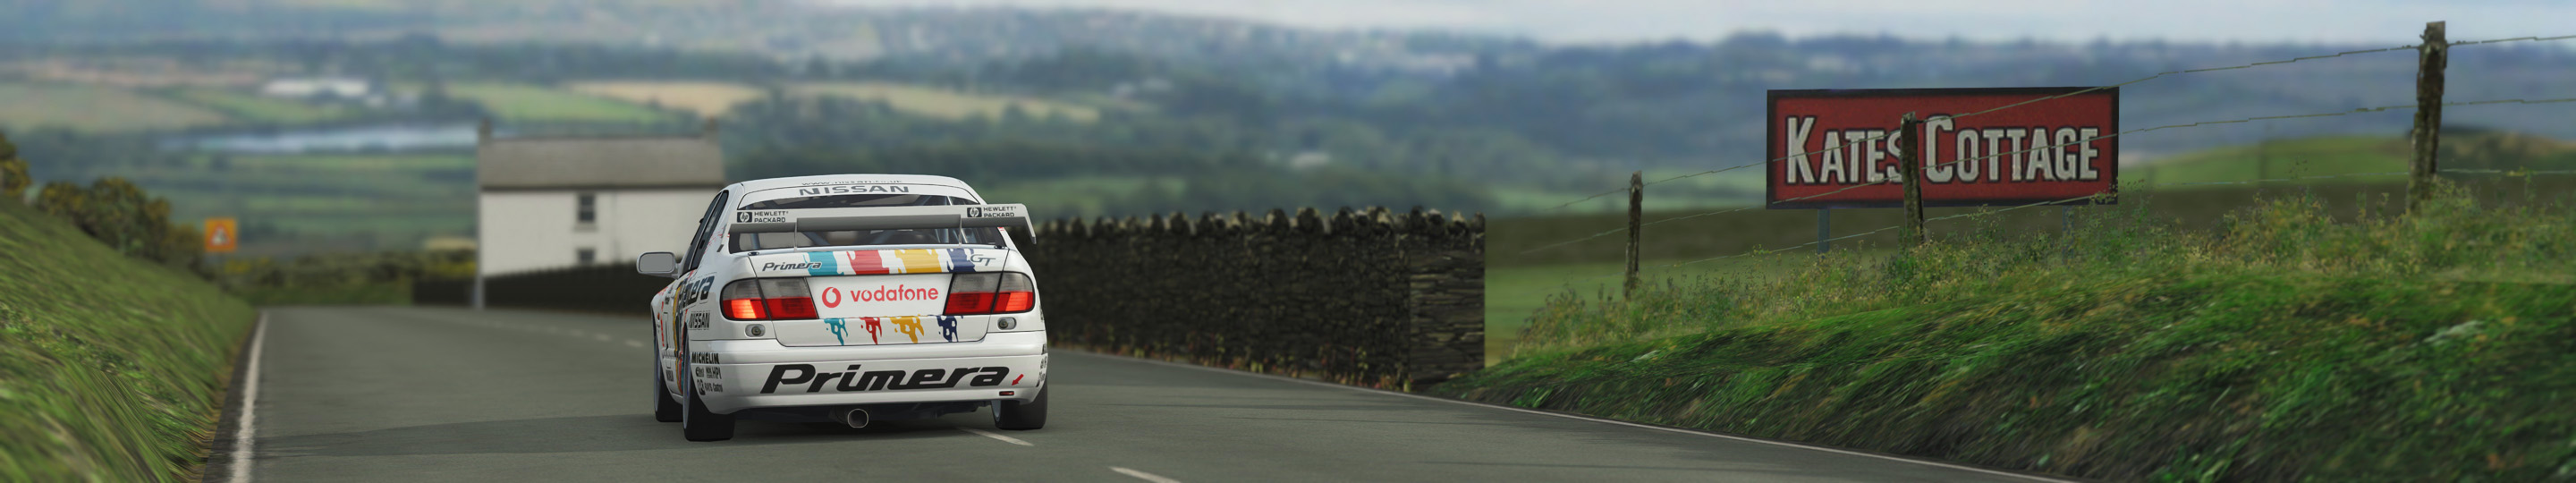 4 rFACTOR 2 ISLE of MAN by JIM PEARSON with NISSAN PRIMERA copy.jpg